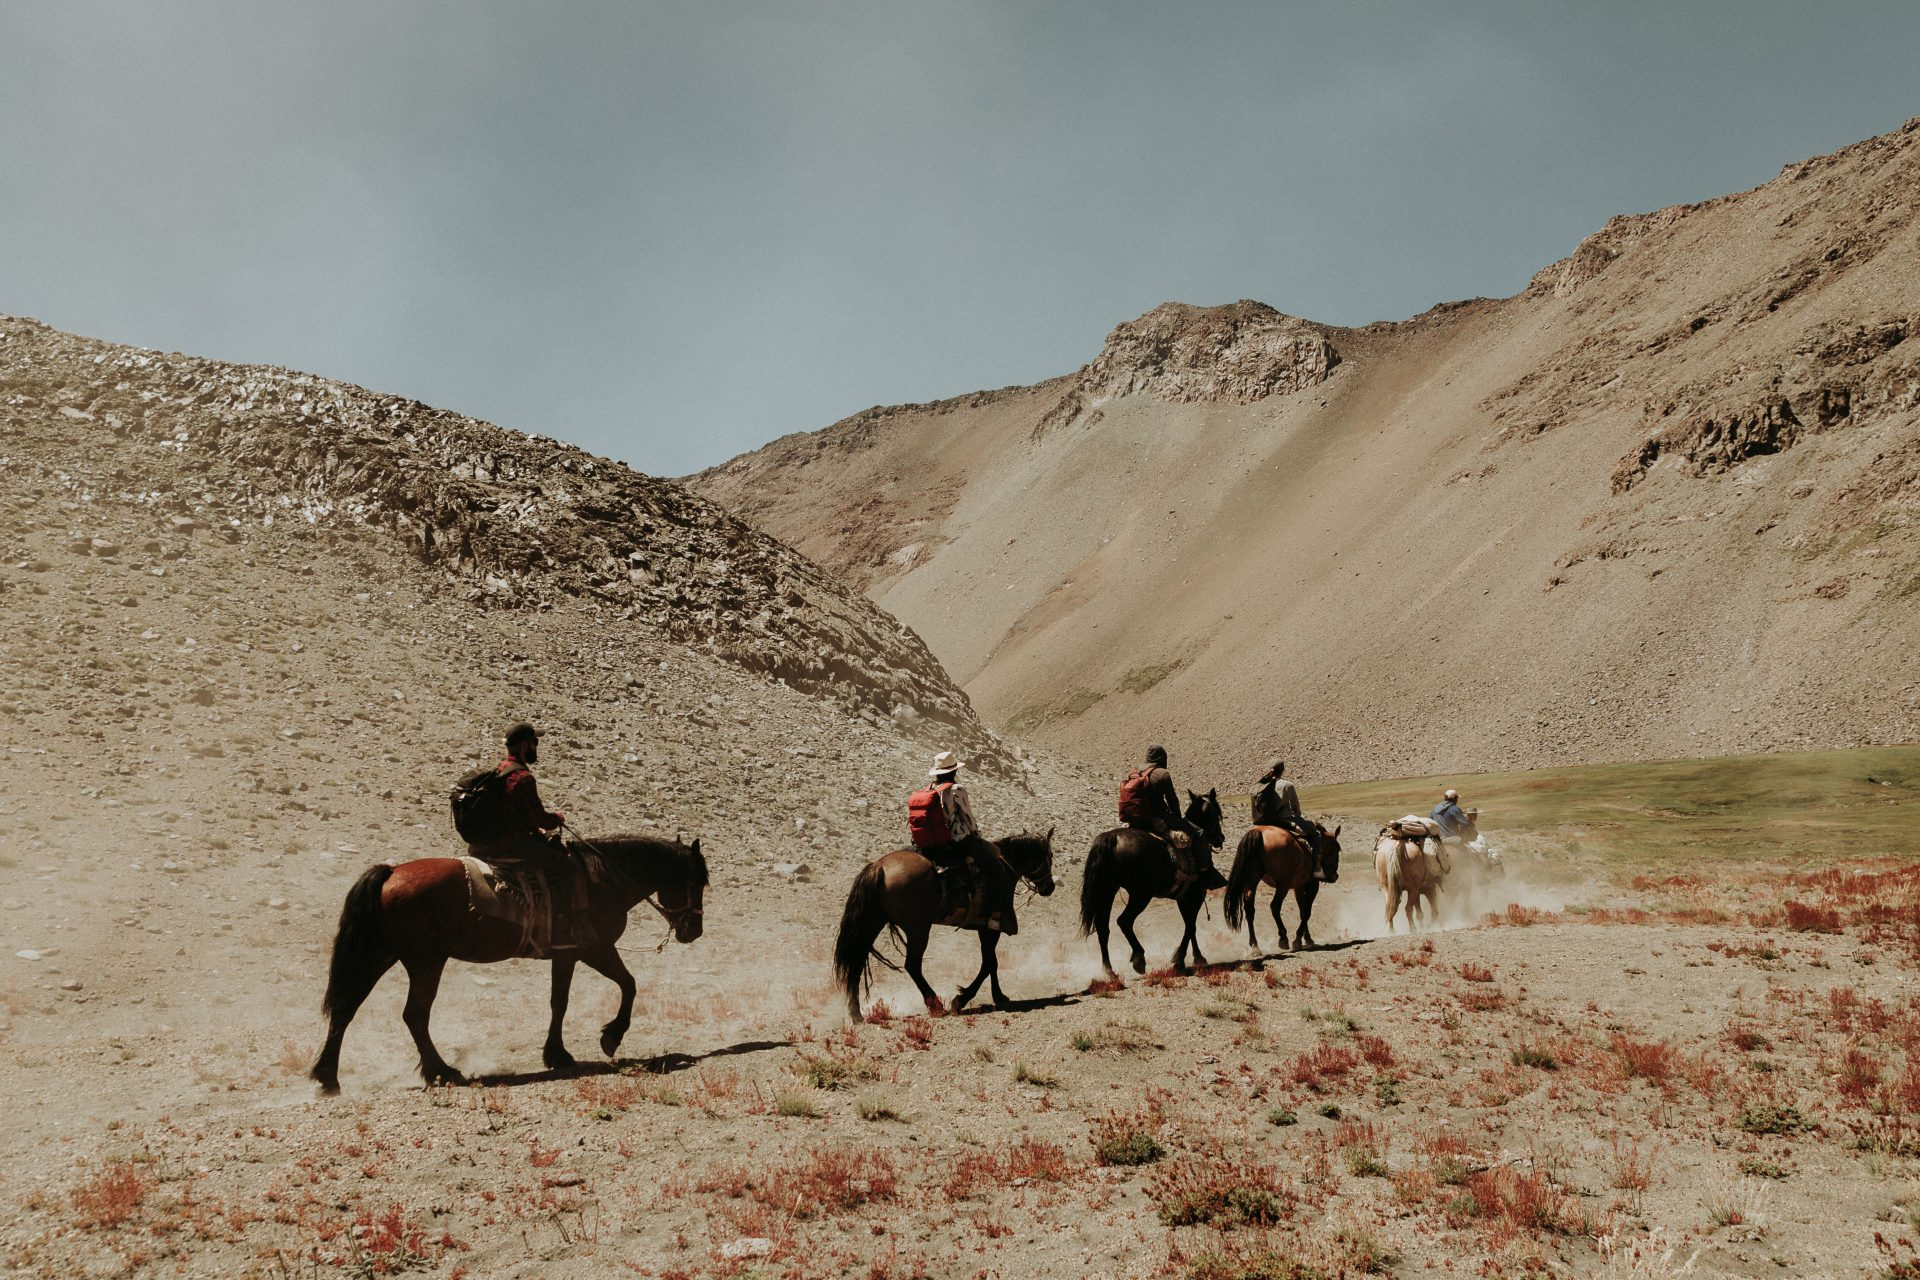 Horse riding adventure wedding in Chile - Group arriving at campsite